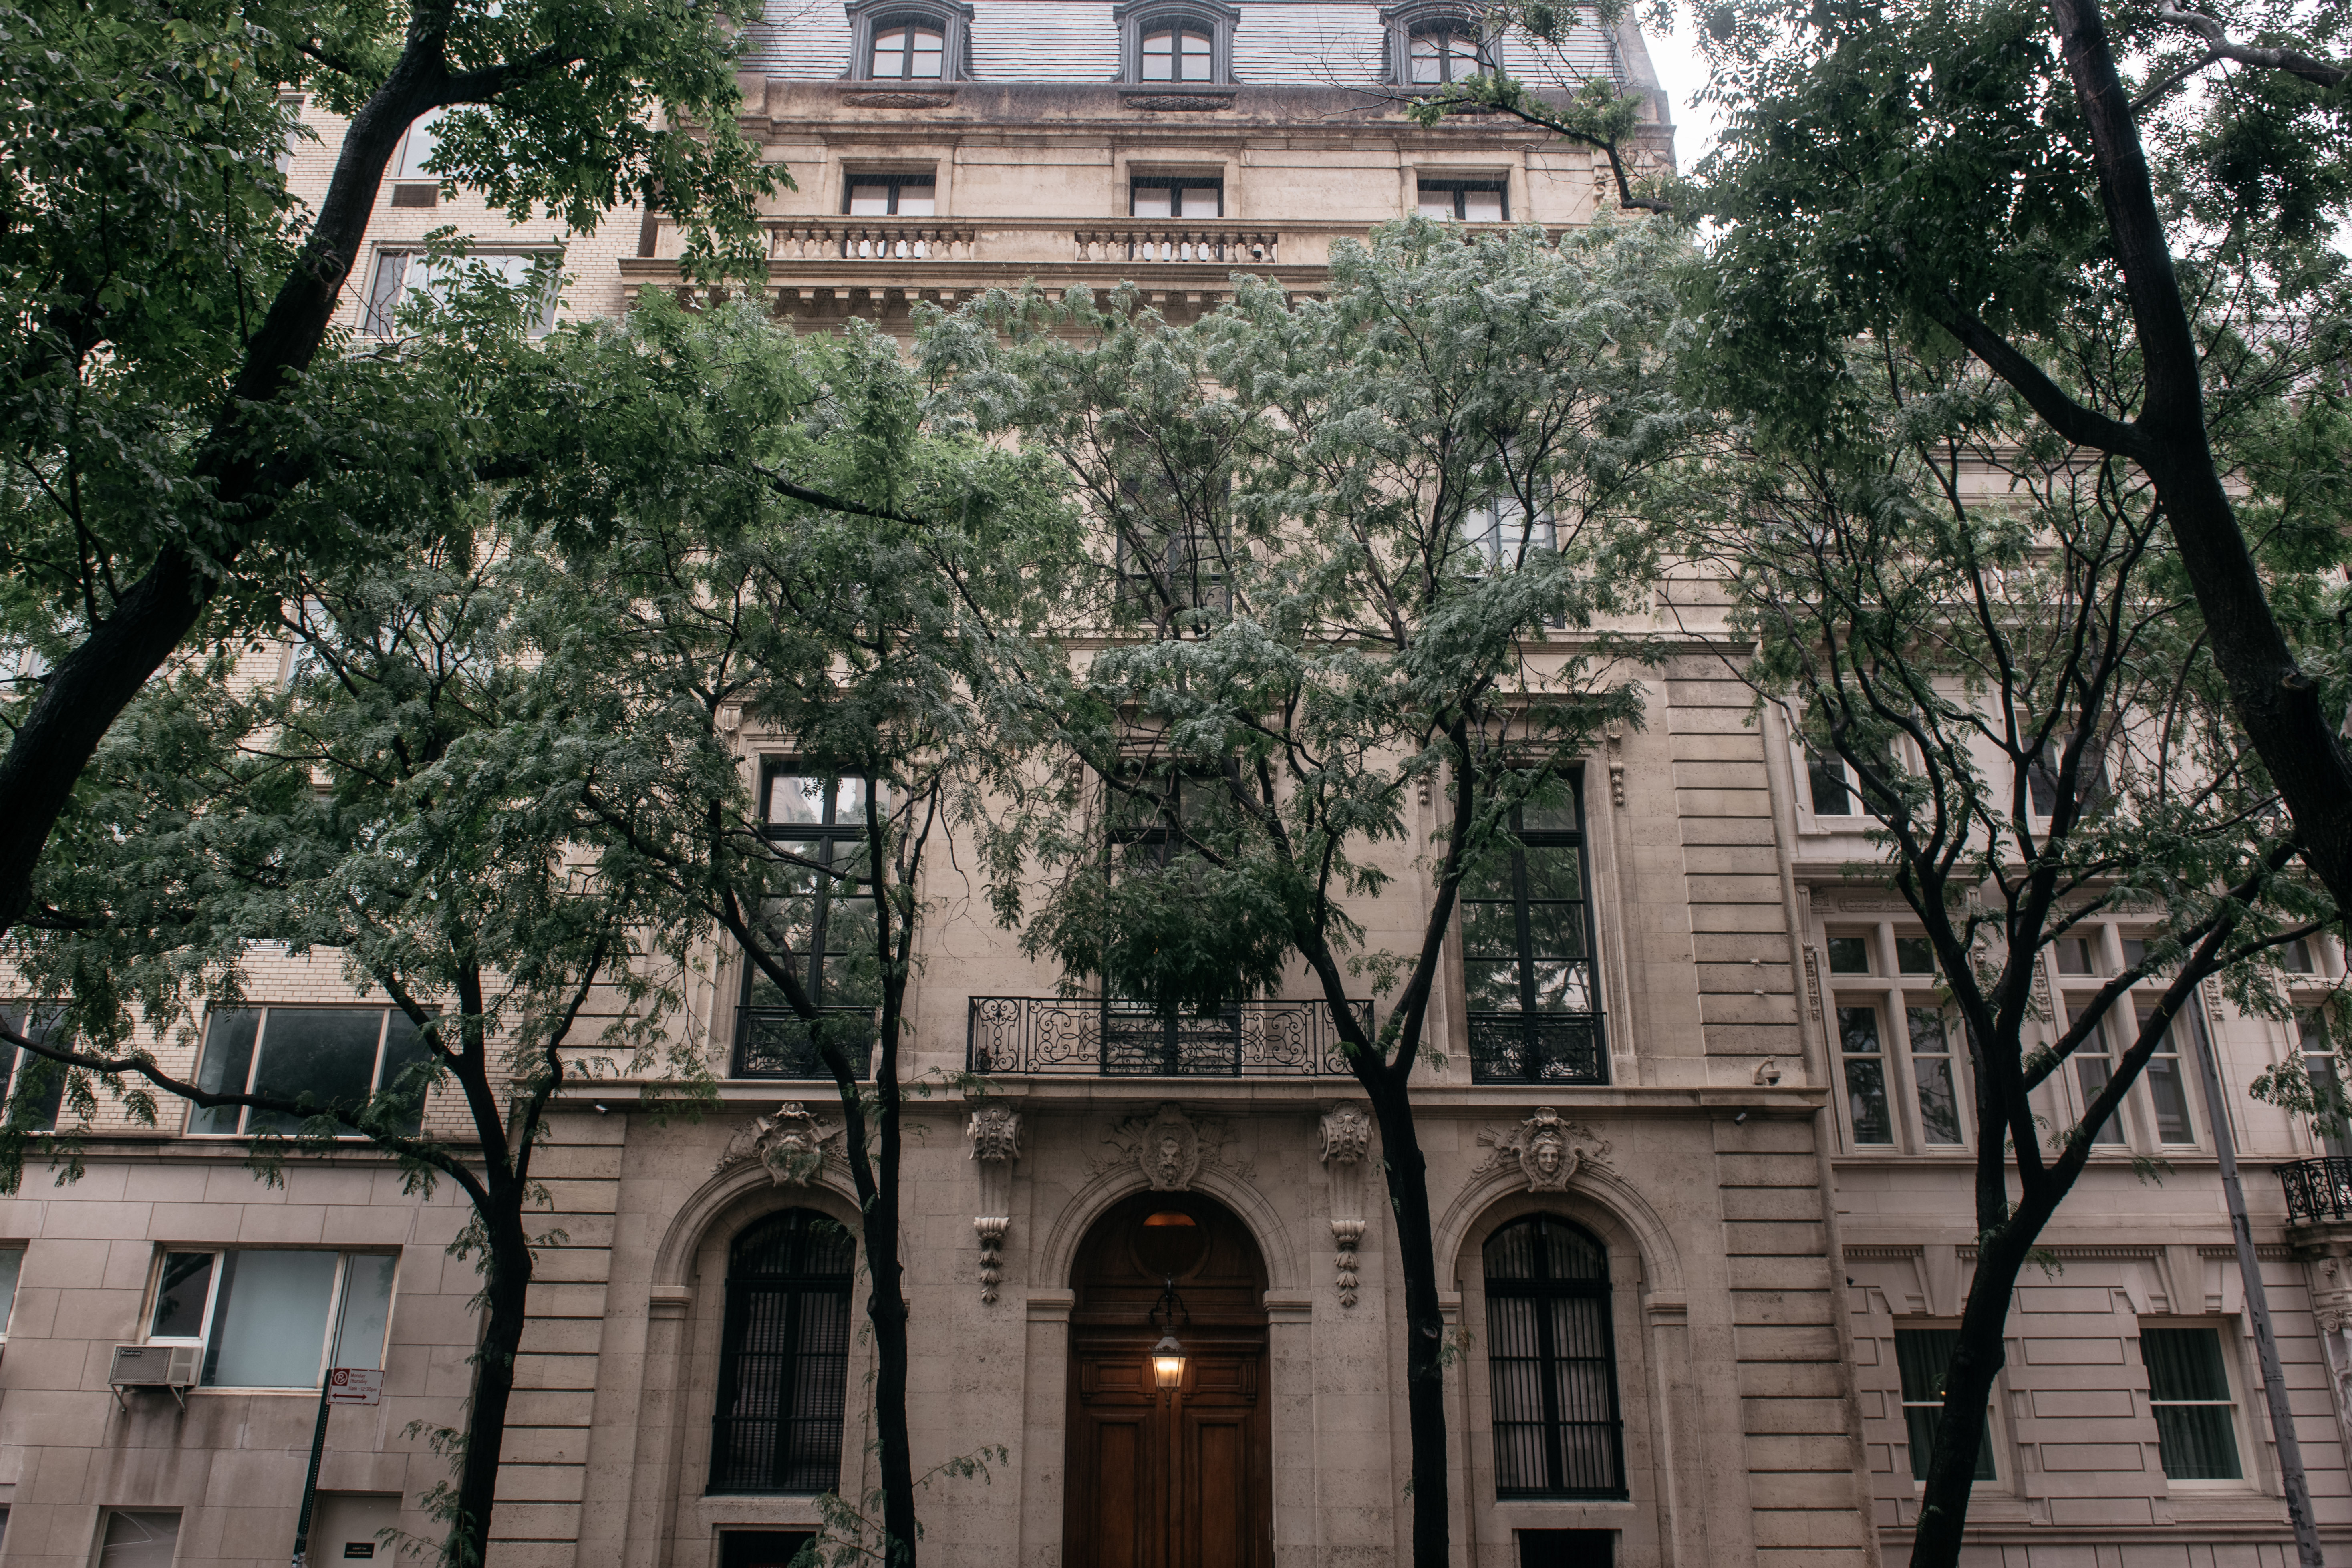 Jeffrey Epstein's residence at 9 East 71st Street in the Manhattan borough of New York on July 18, 2019 in New York City. (Scott Heins/Getty Images)